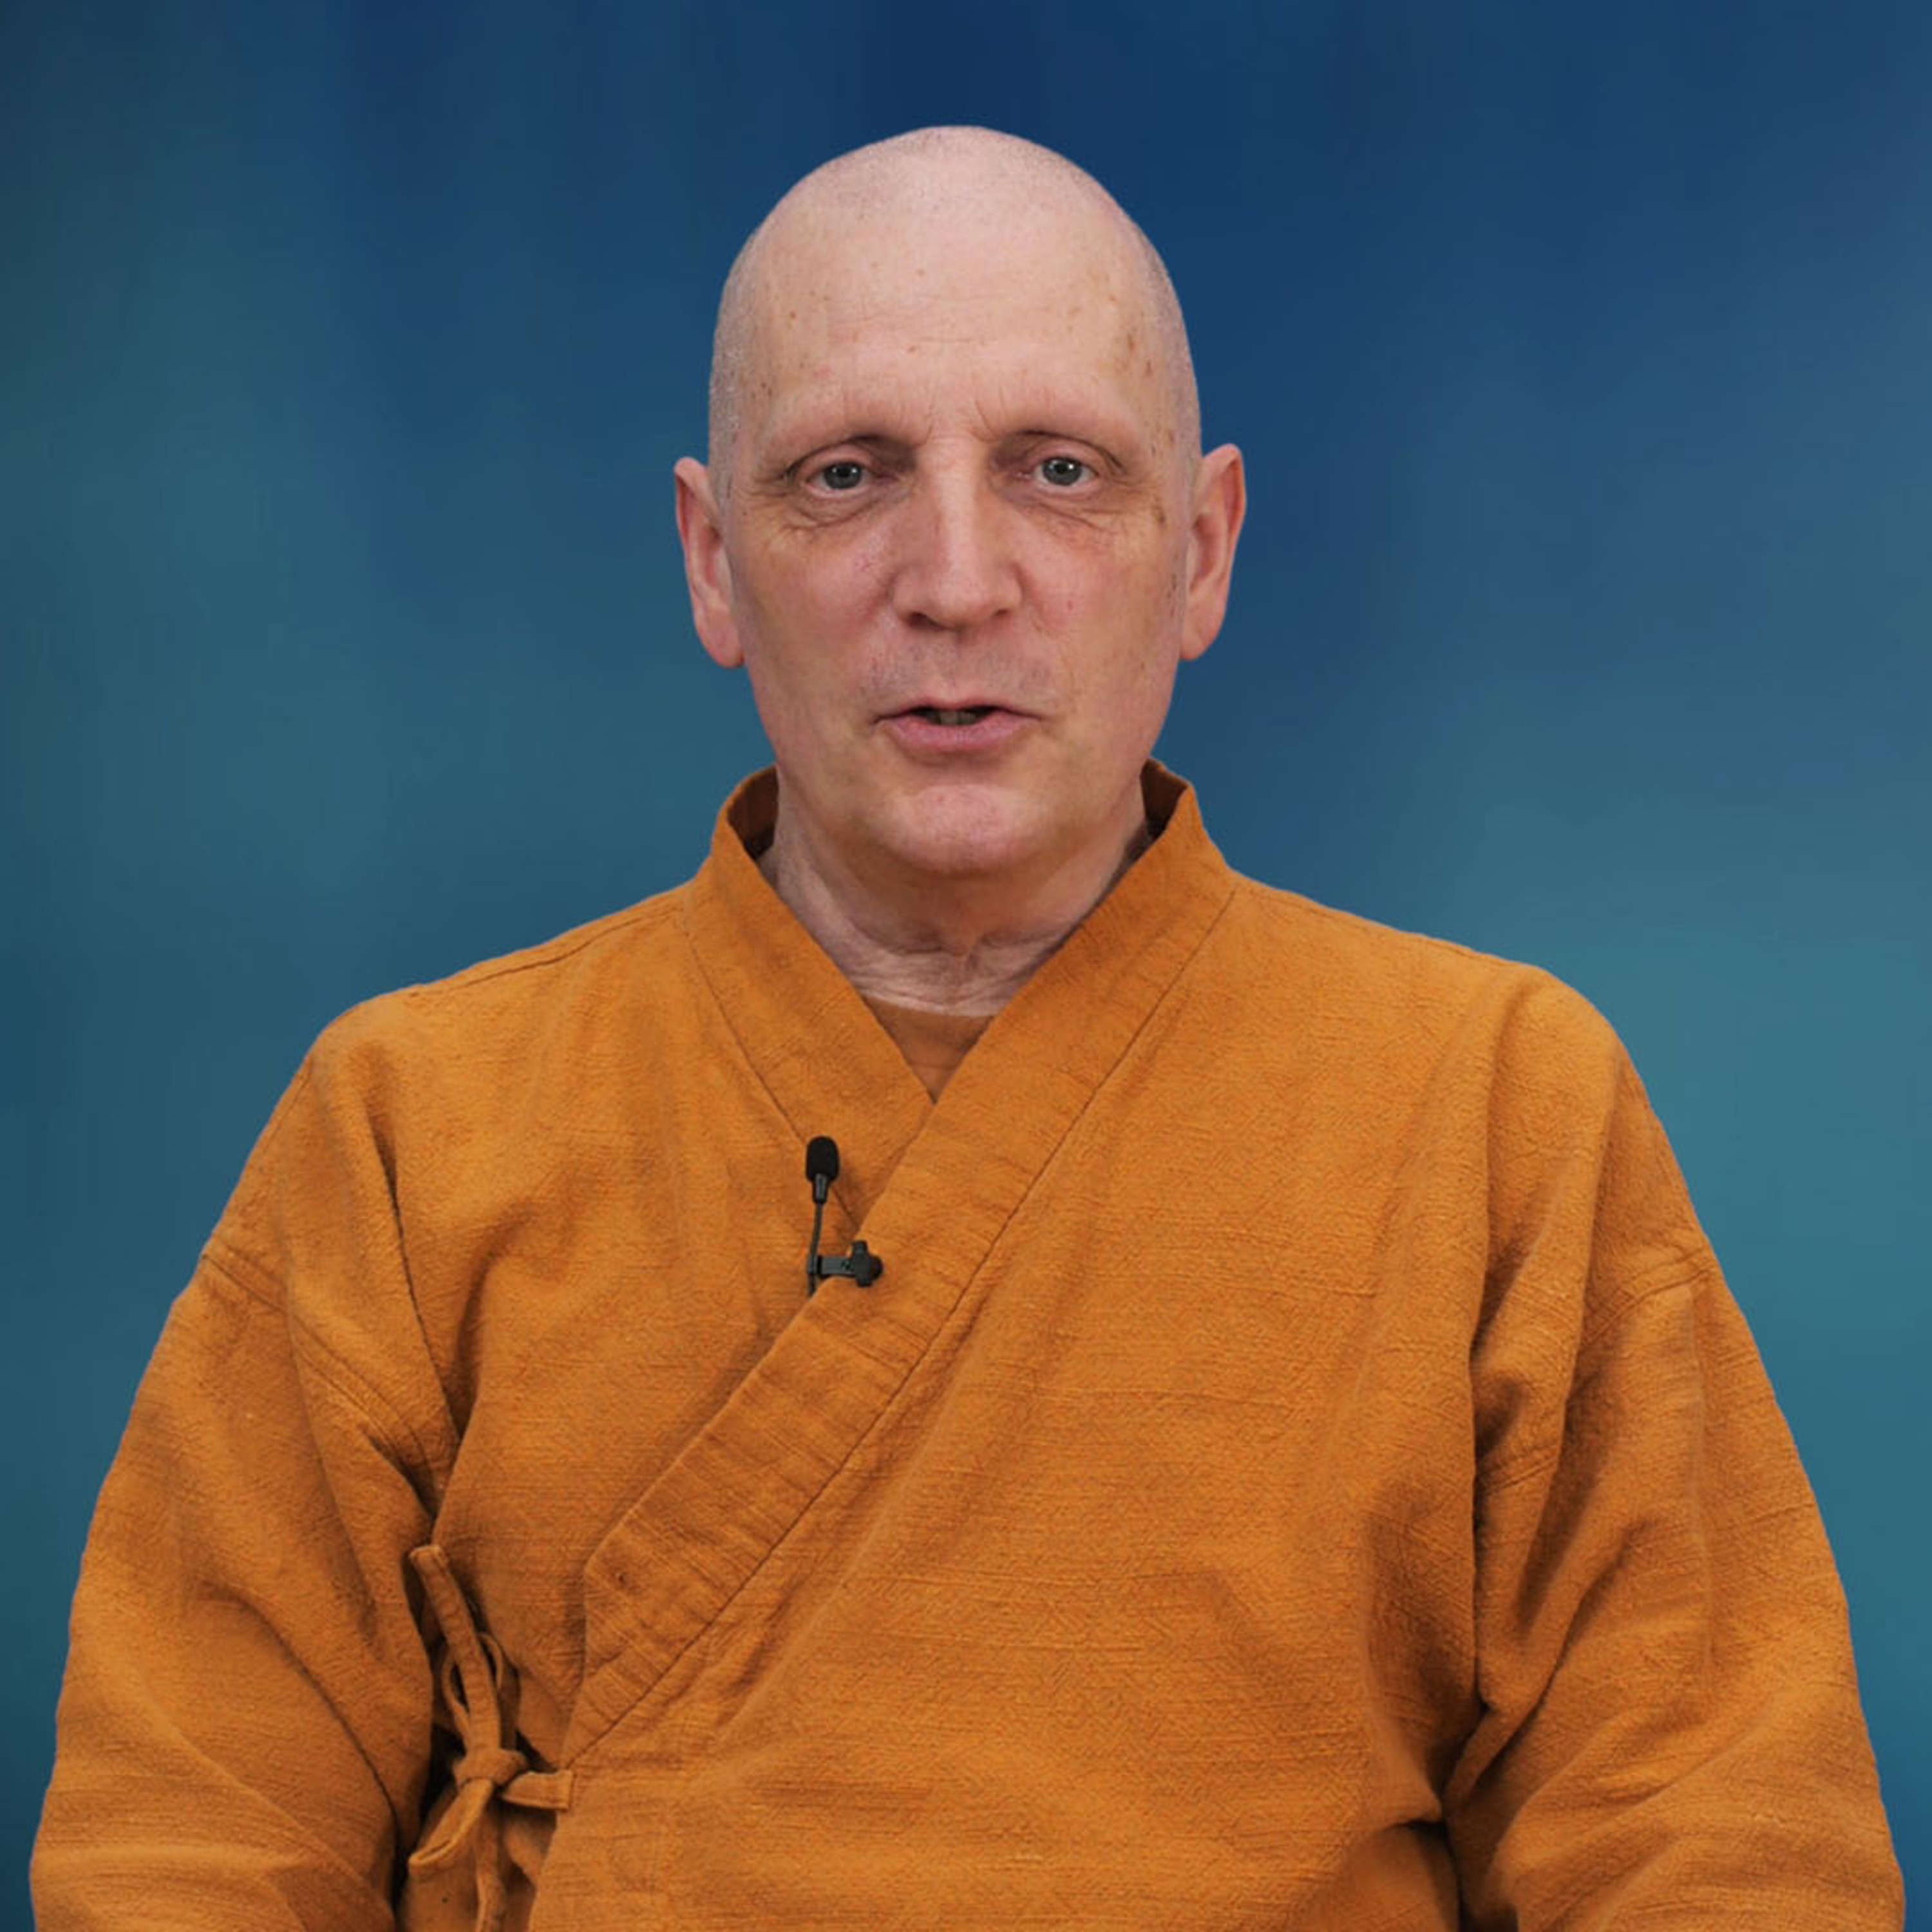 The Noble Eightfold Path (5) - Right Livelihood